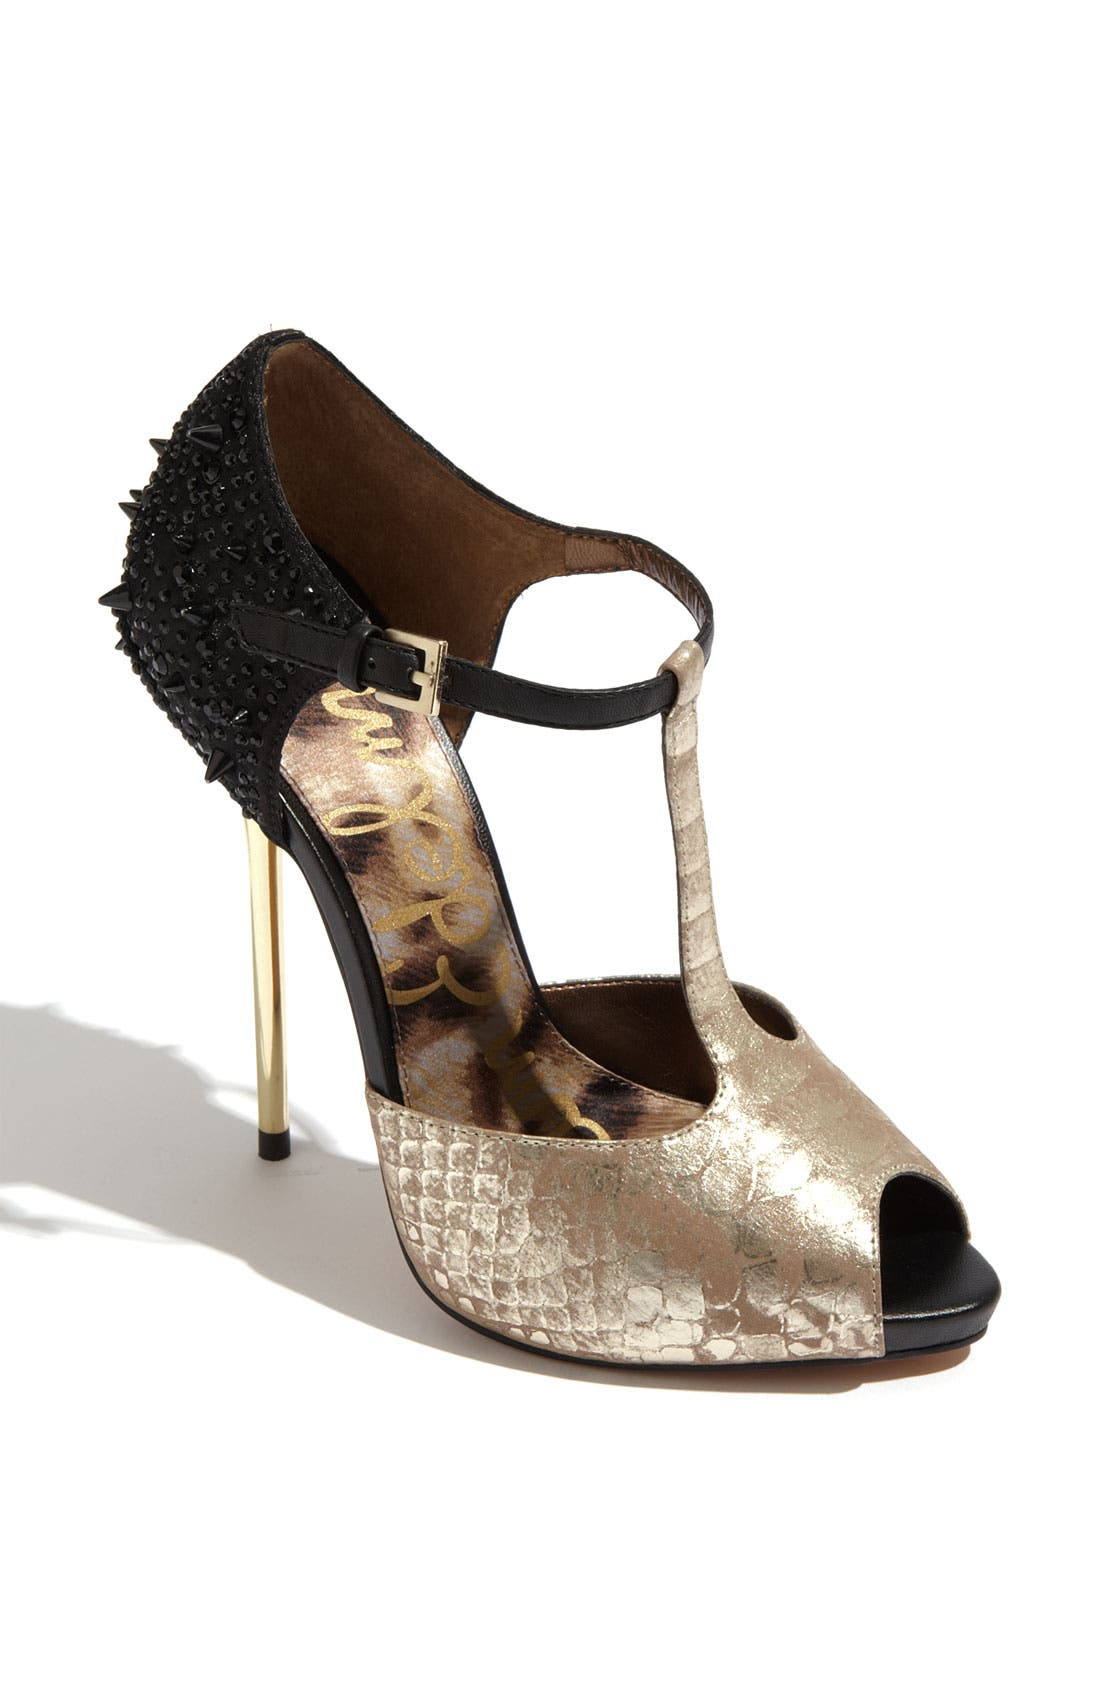 Alternate Image 1 Selected - Sam Edelman 'Scarlett' Pump